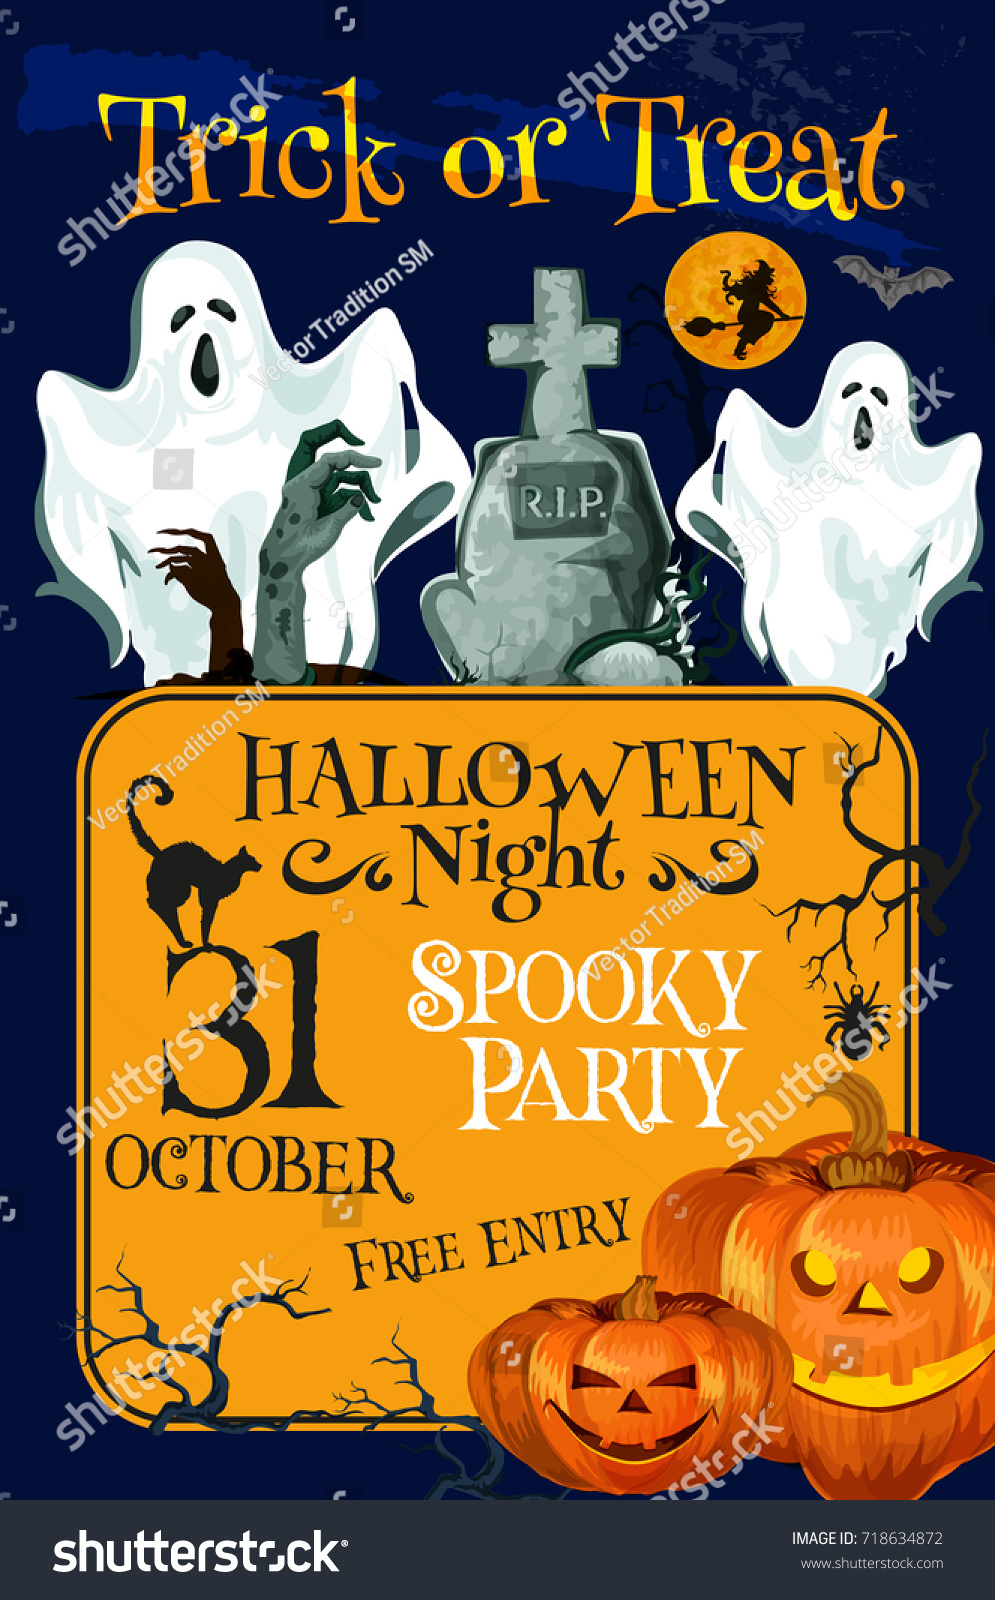 Halloween Spooky Night Party 31 October Vector 718634872 – Scary or Horror Invitation Cards